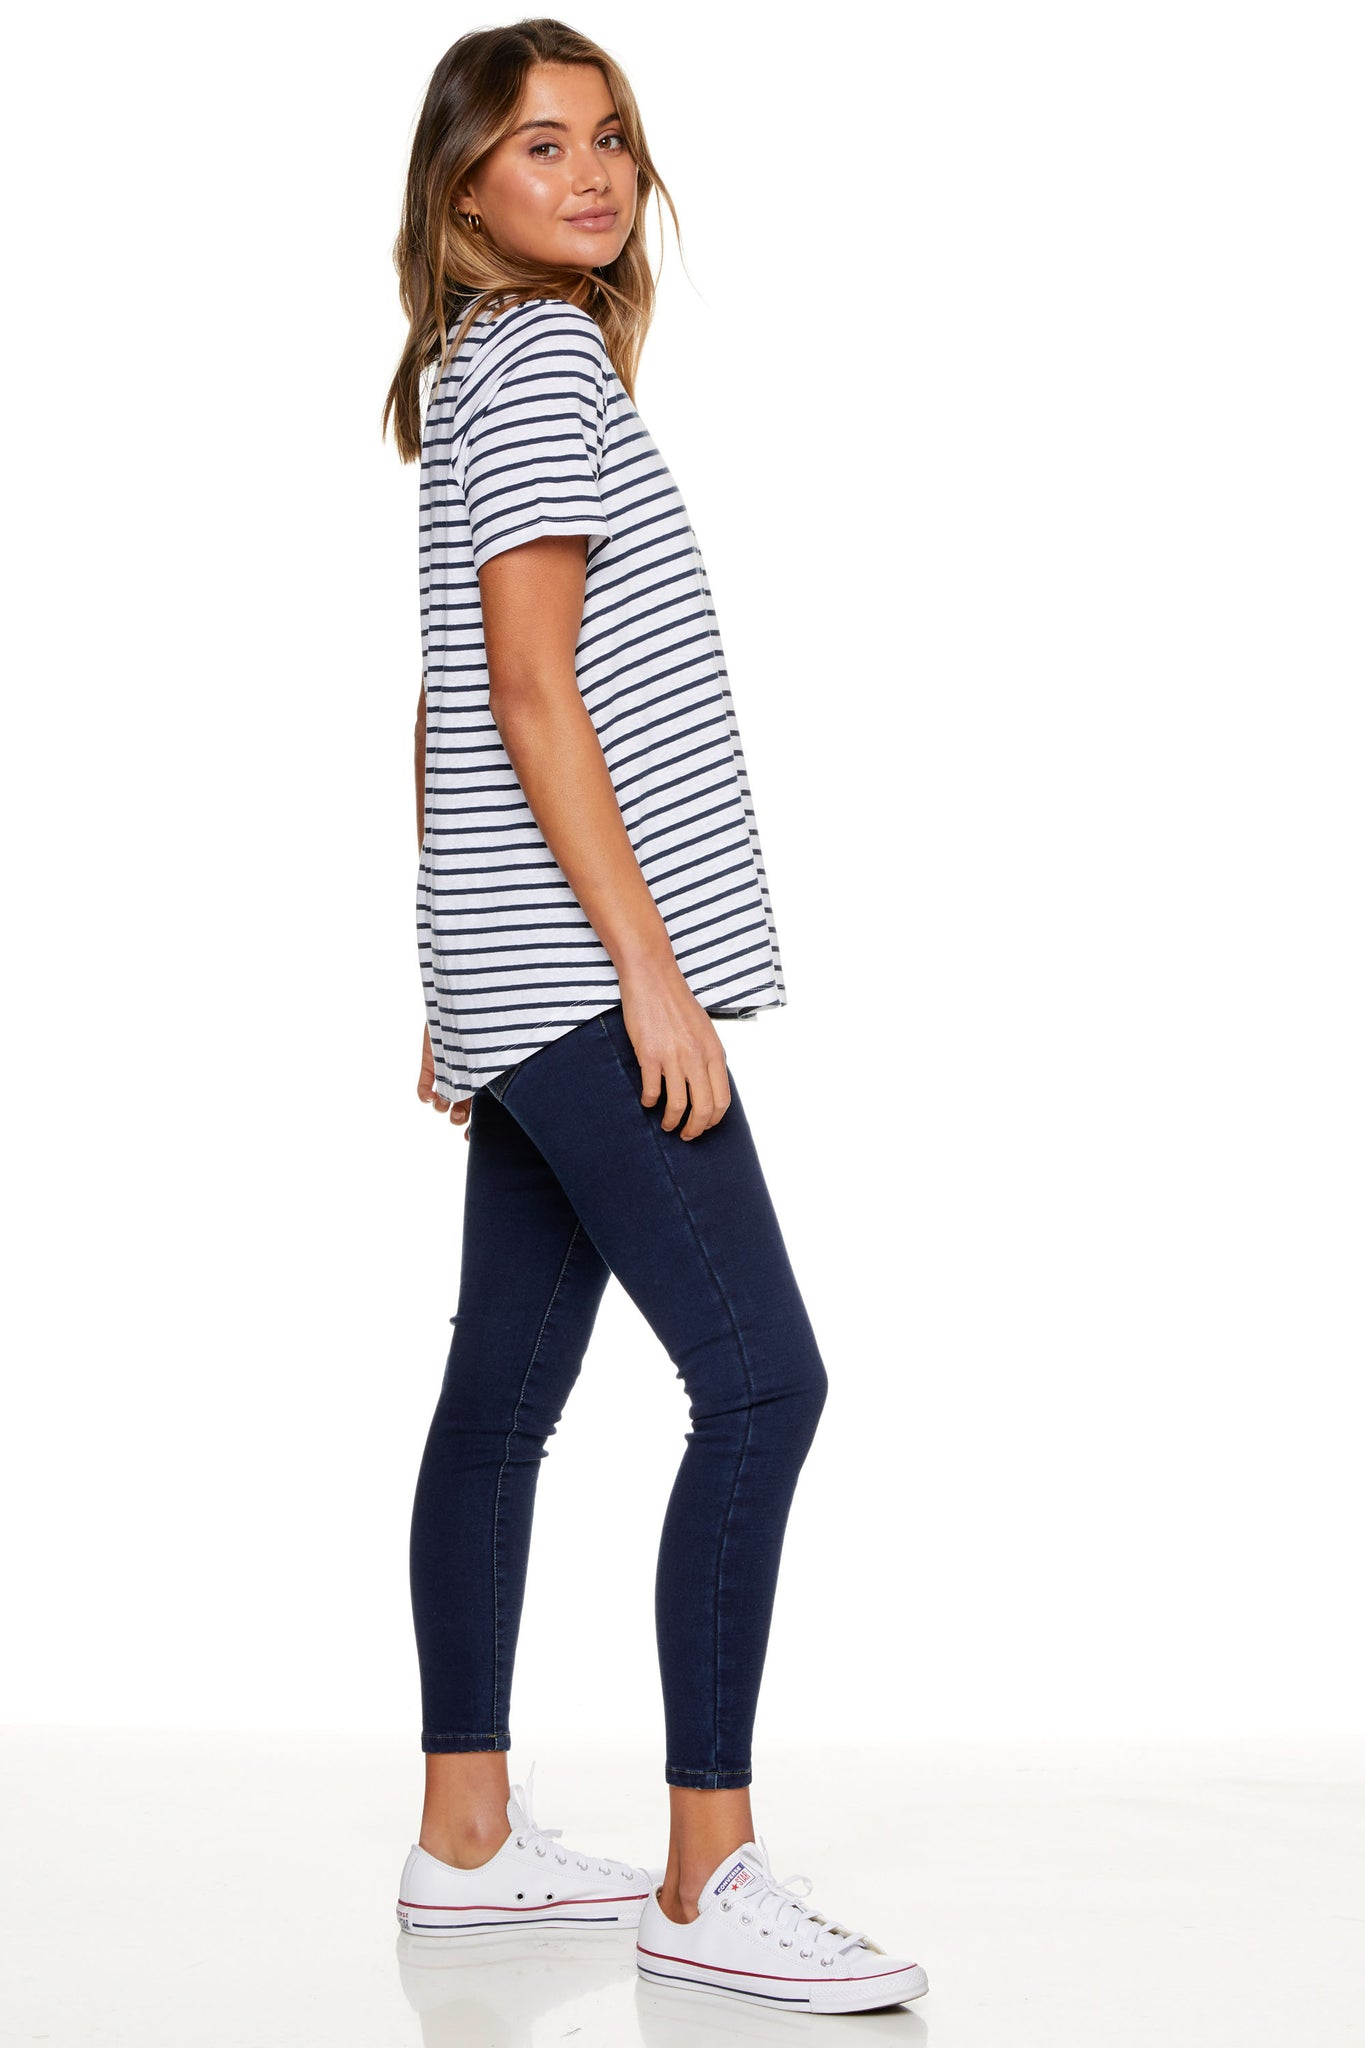 Take A Walk Underbump Skinny Jean